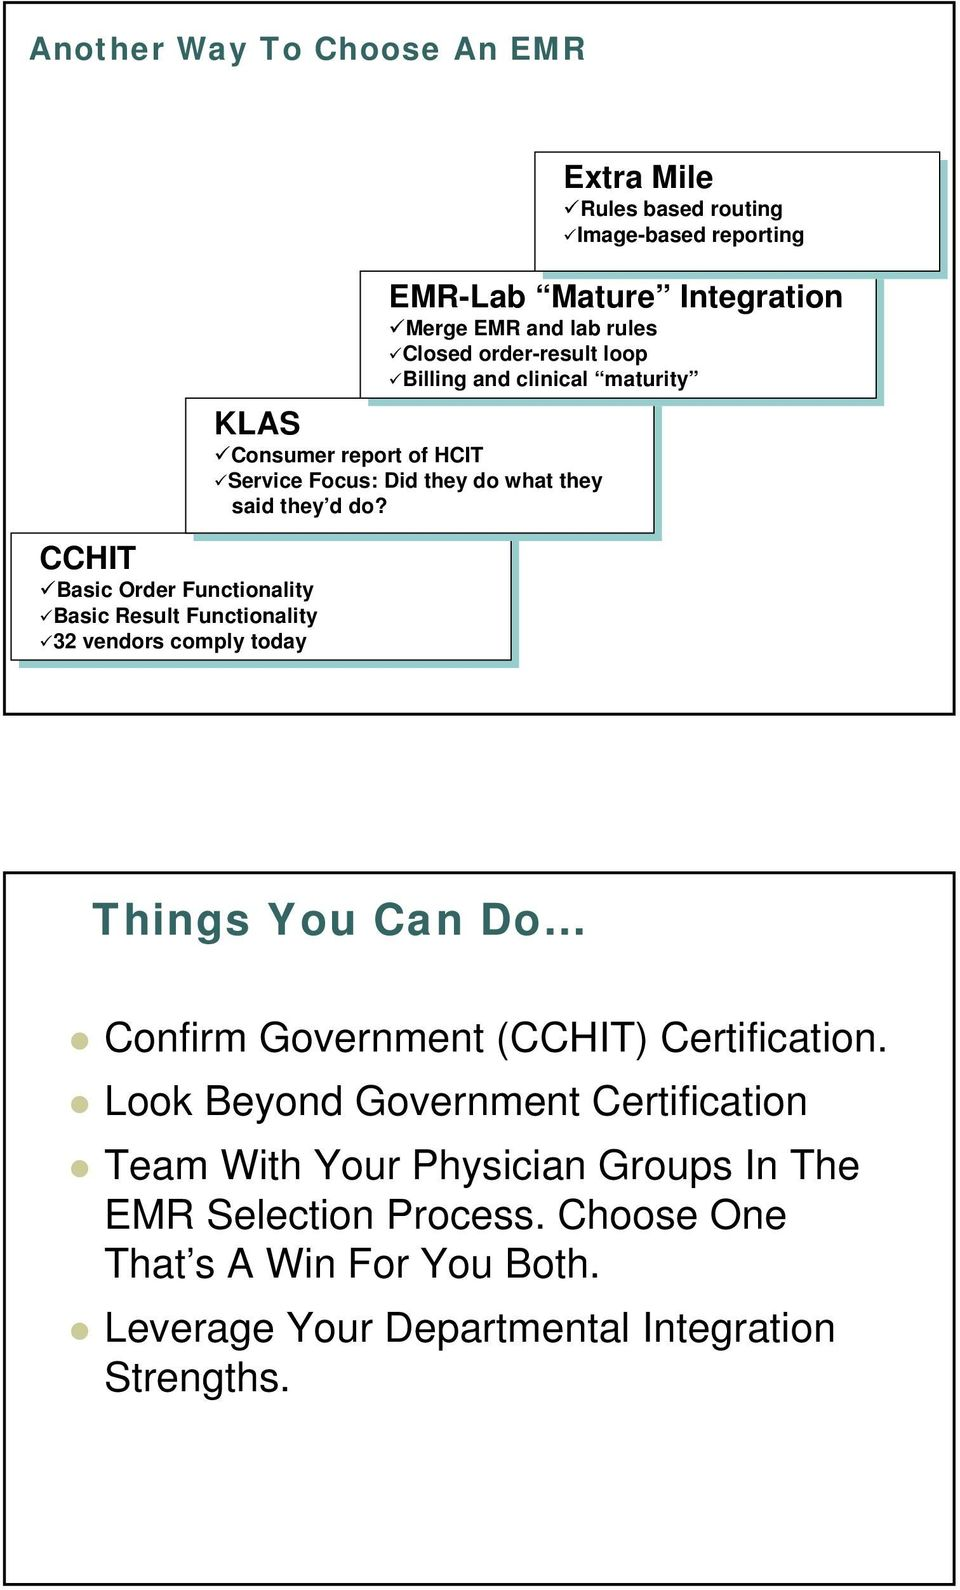 Consumer report report of of HCIT HCIT Service Service Focus: Focus: Did Did they they do